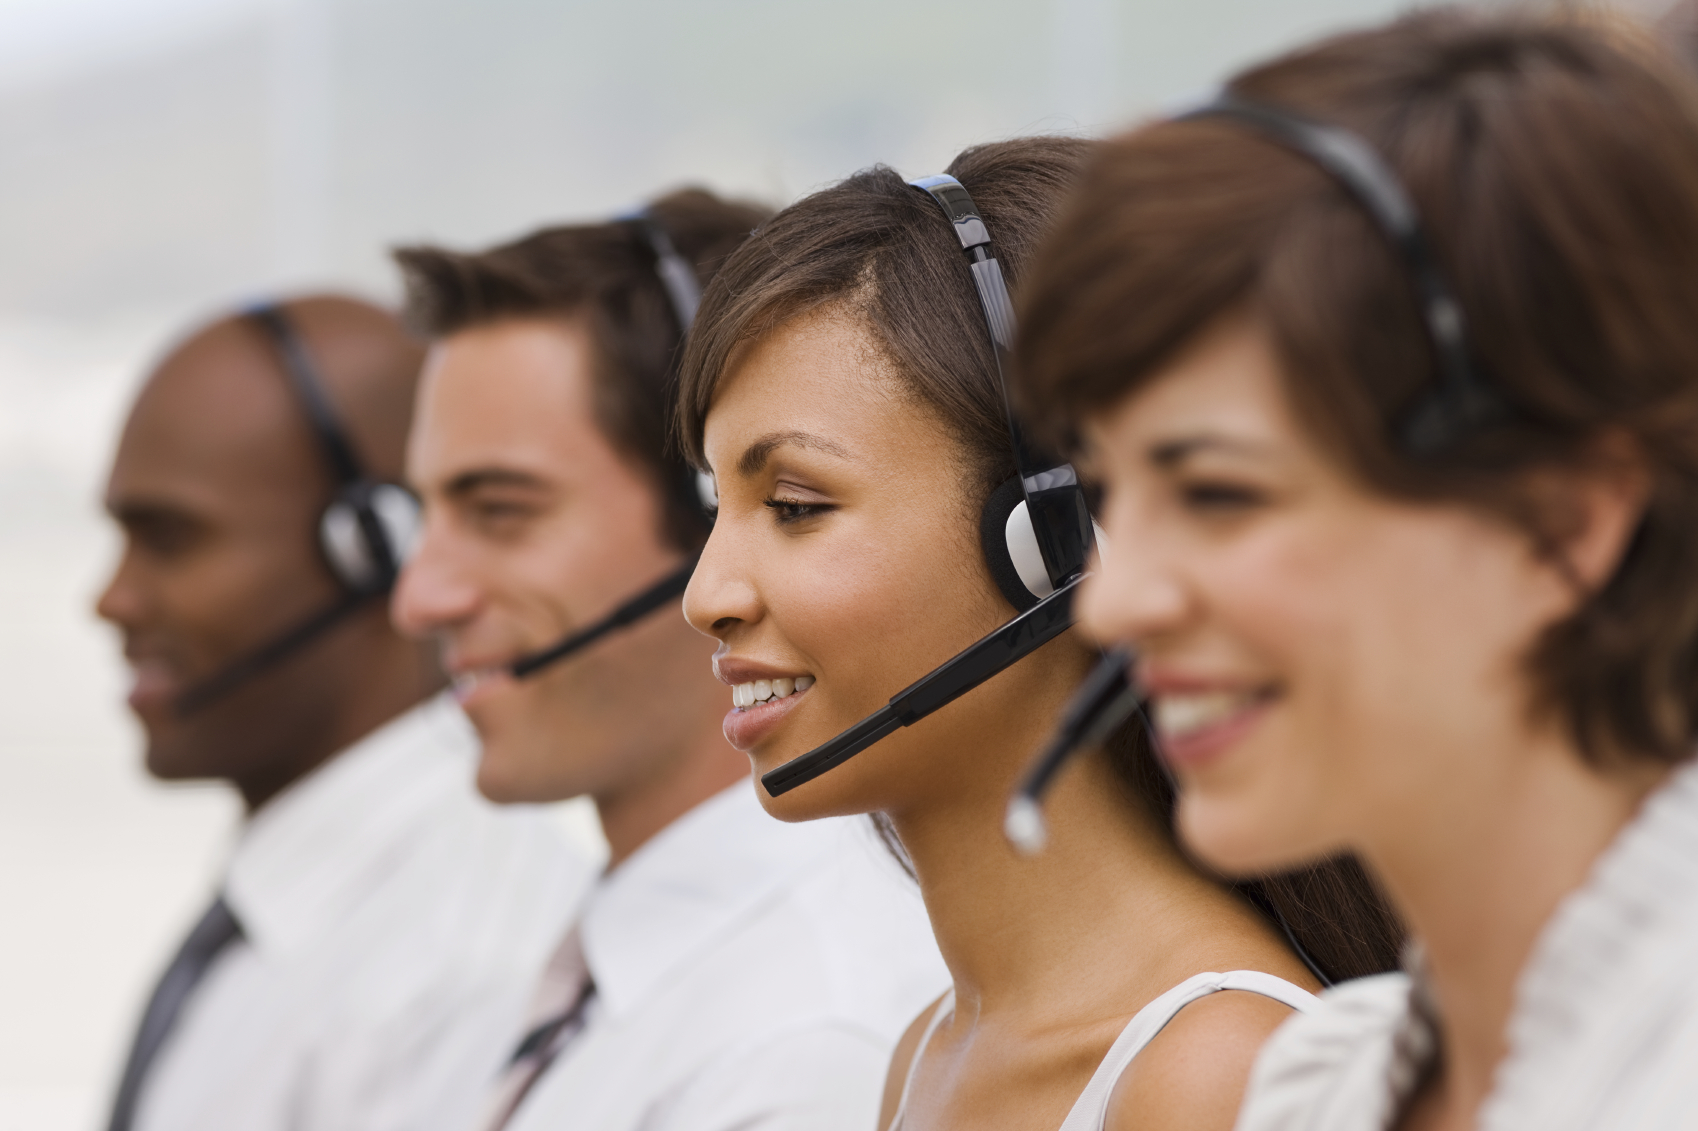 call-center-agents2.jpg